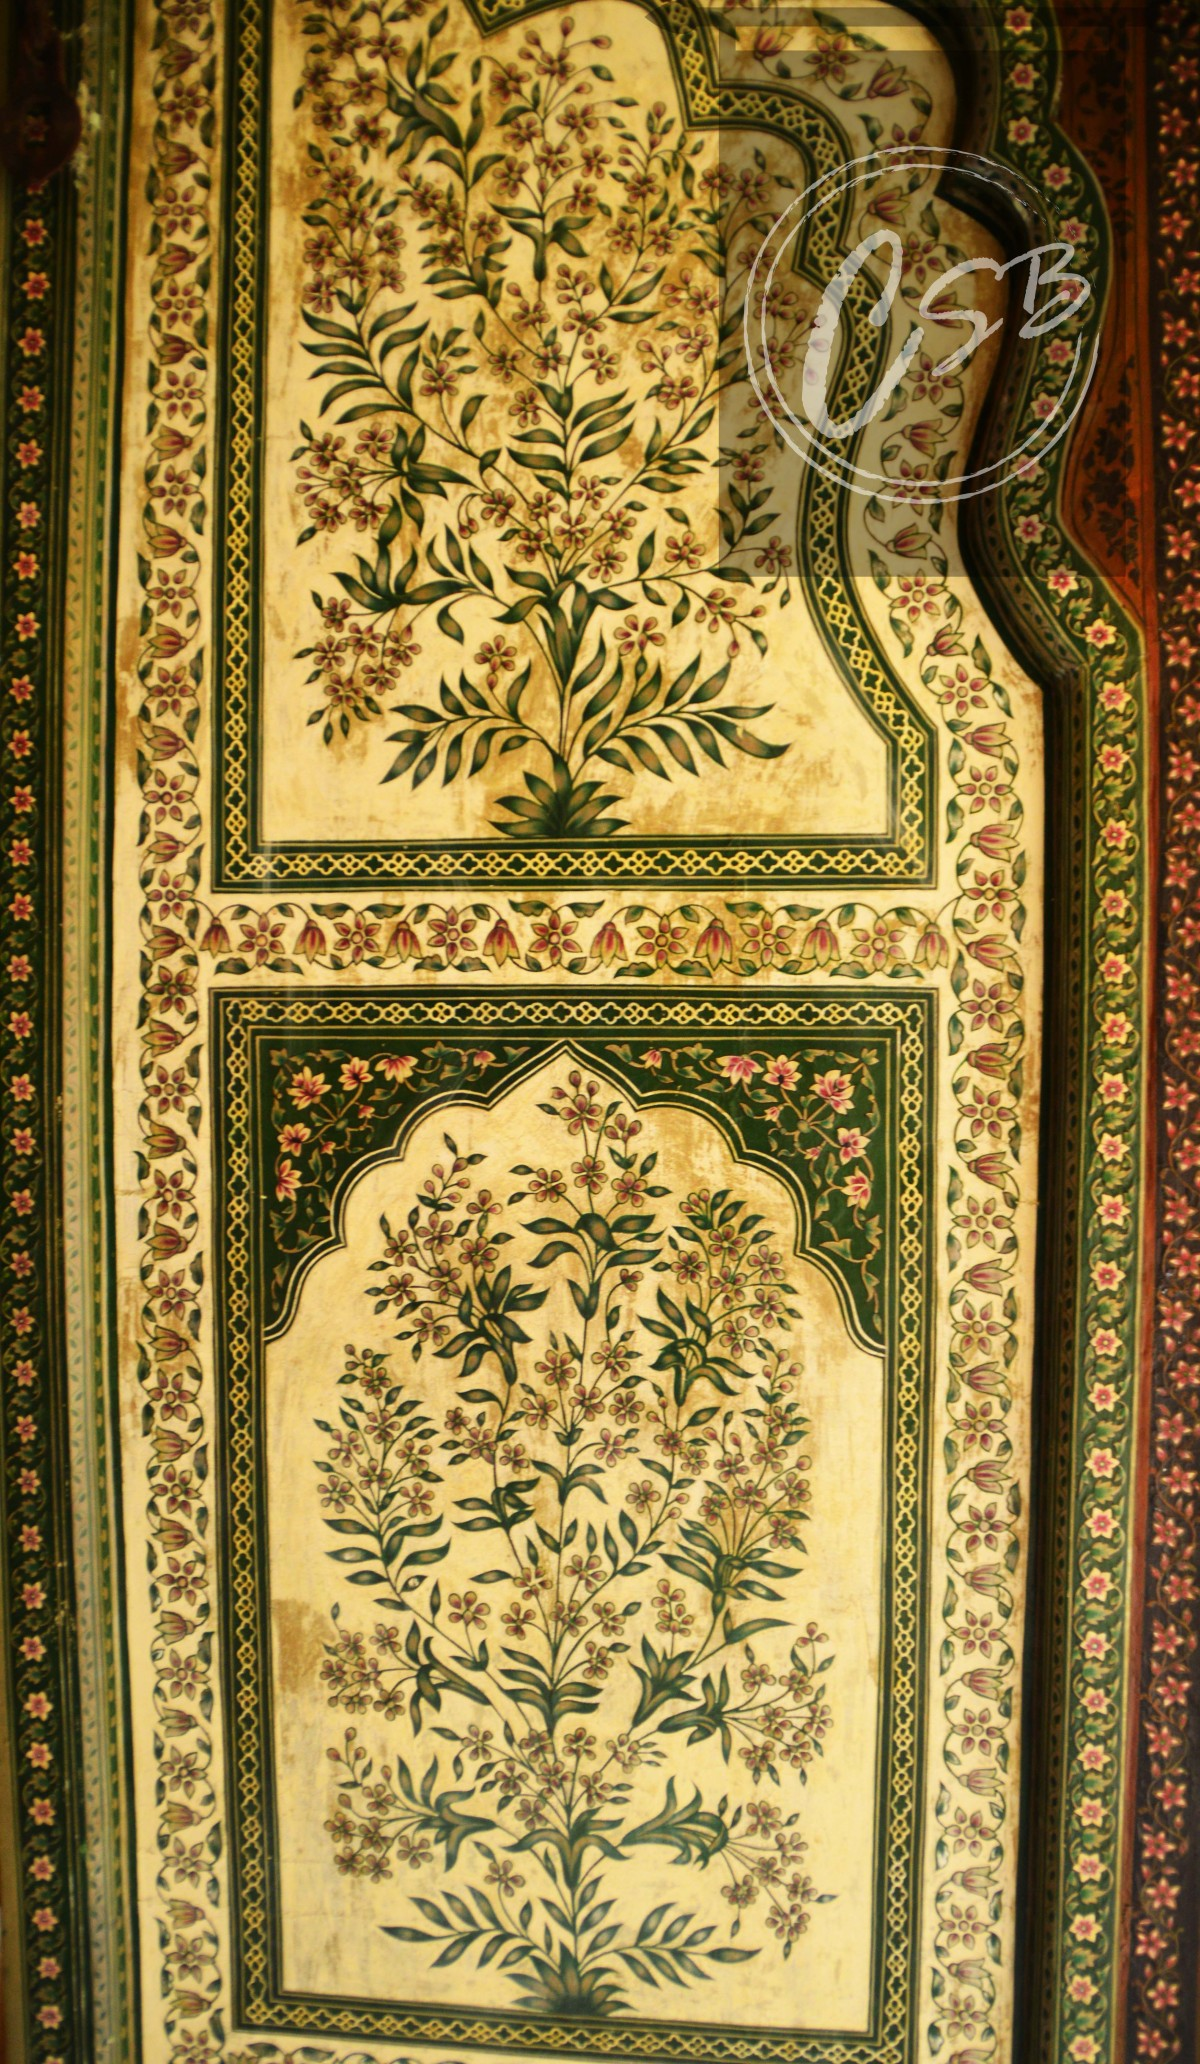 Pretty foliage patterns painted on the City Palace Doors